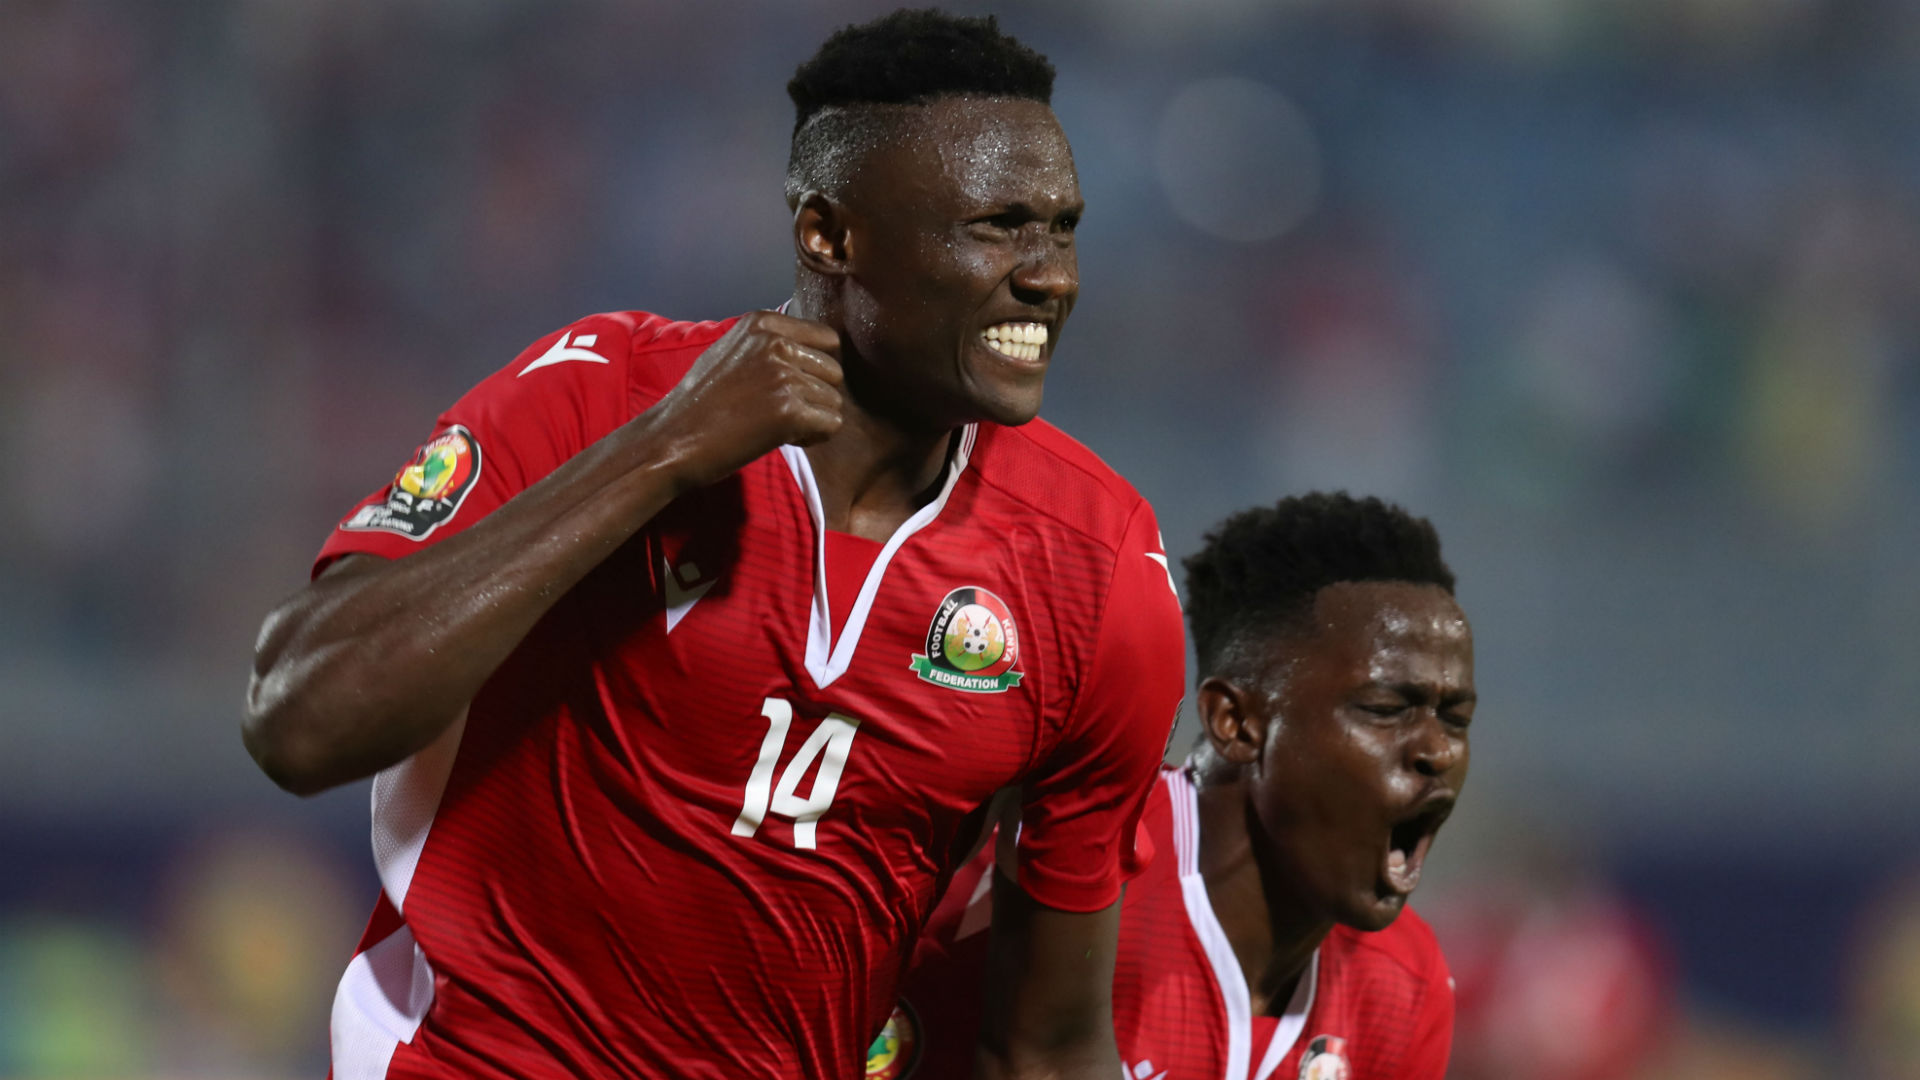 AFCON: Mané hits brace in Senegal's 3-0 thumping of Kenya